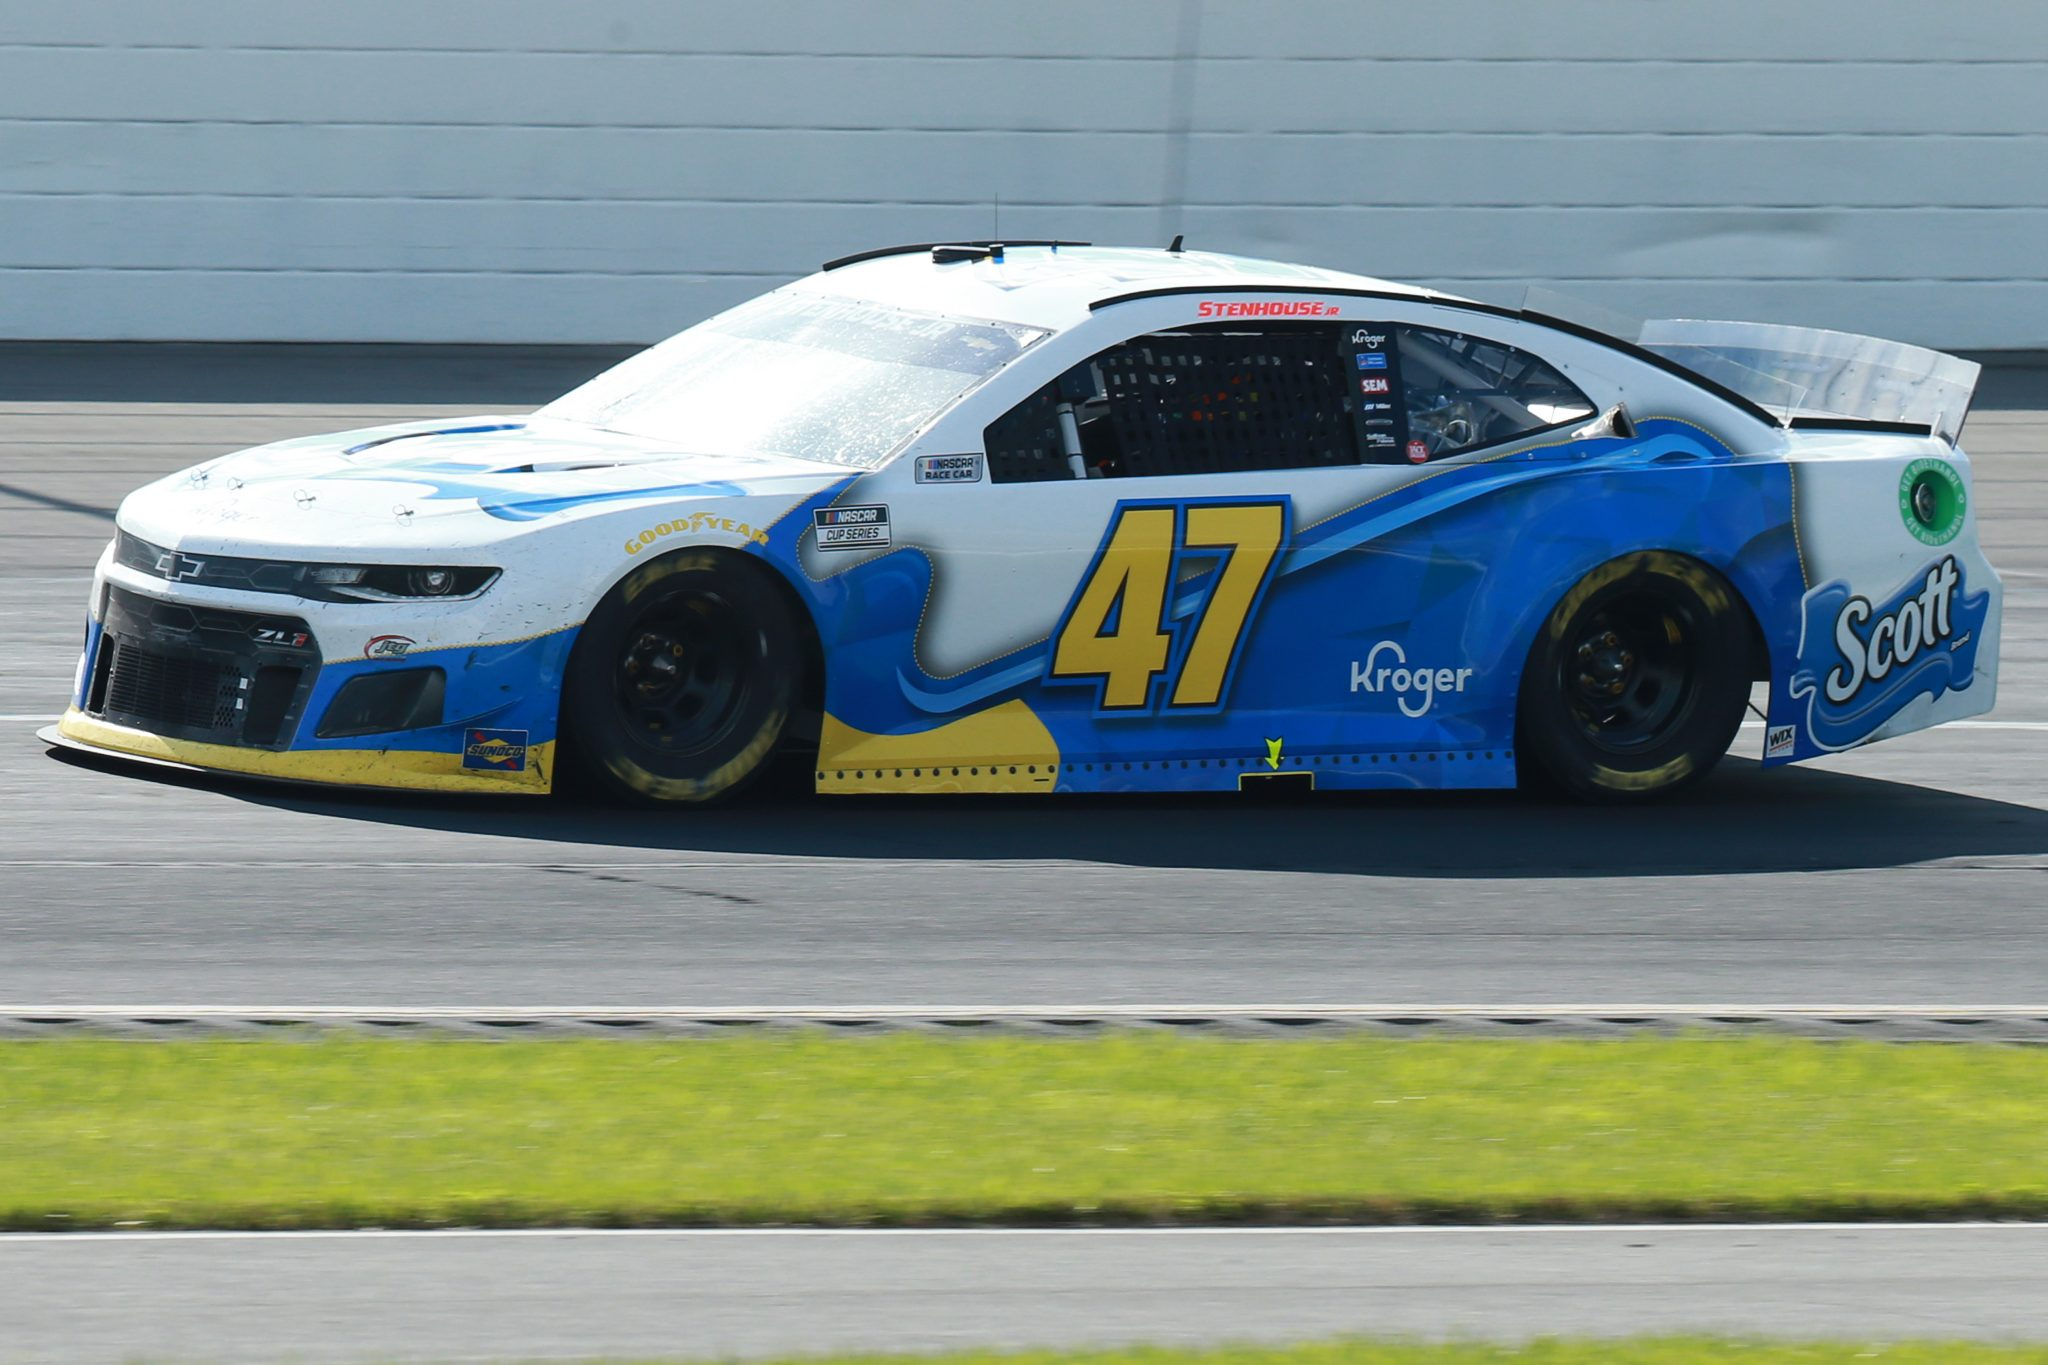 LONG POND, PENNSYLVANIA - JUNE 27: Ricky Stenhouse Jr., driver of the #47 Scott Brand Chevrolet, drives during the NASCAR Cup Series Explore the Pocono Mountains 350 at Pocono Raceway on June 27, 2021 in Long Pond, Pennsylvania. (Photo by Sean Gardner/Getty Images) | Getty Images